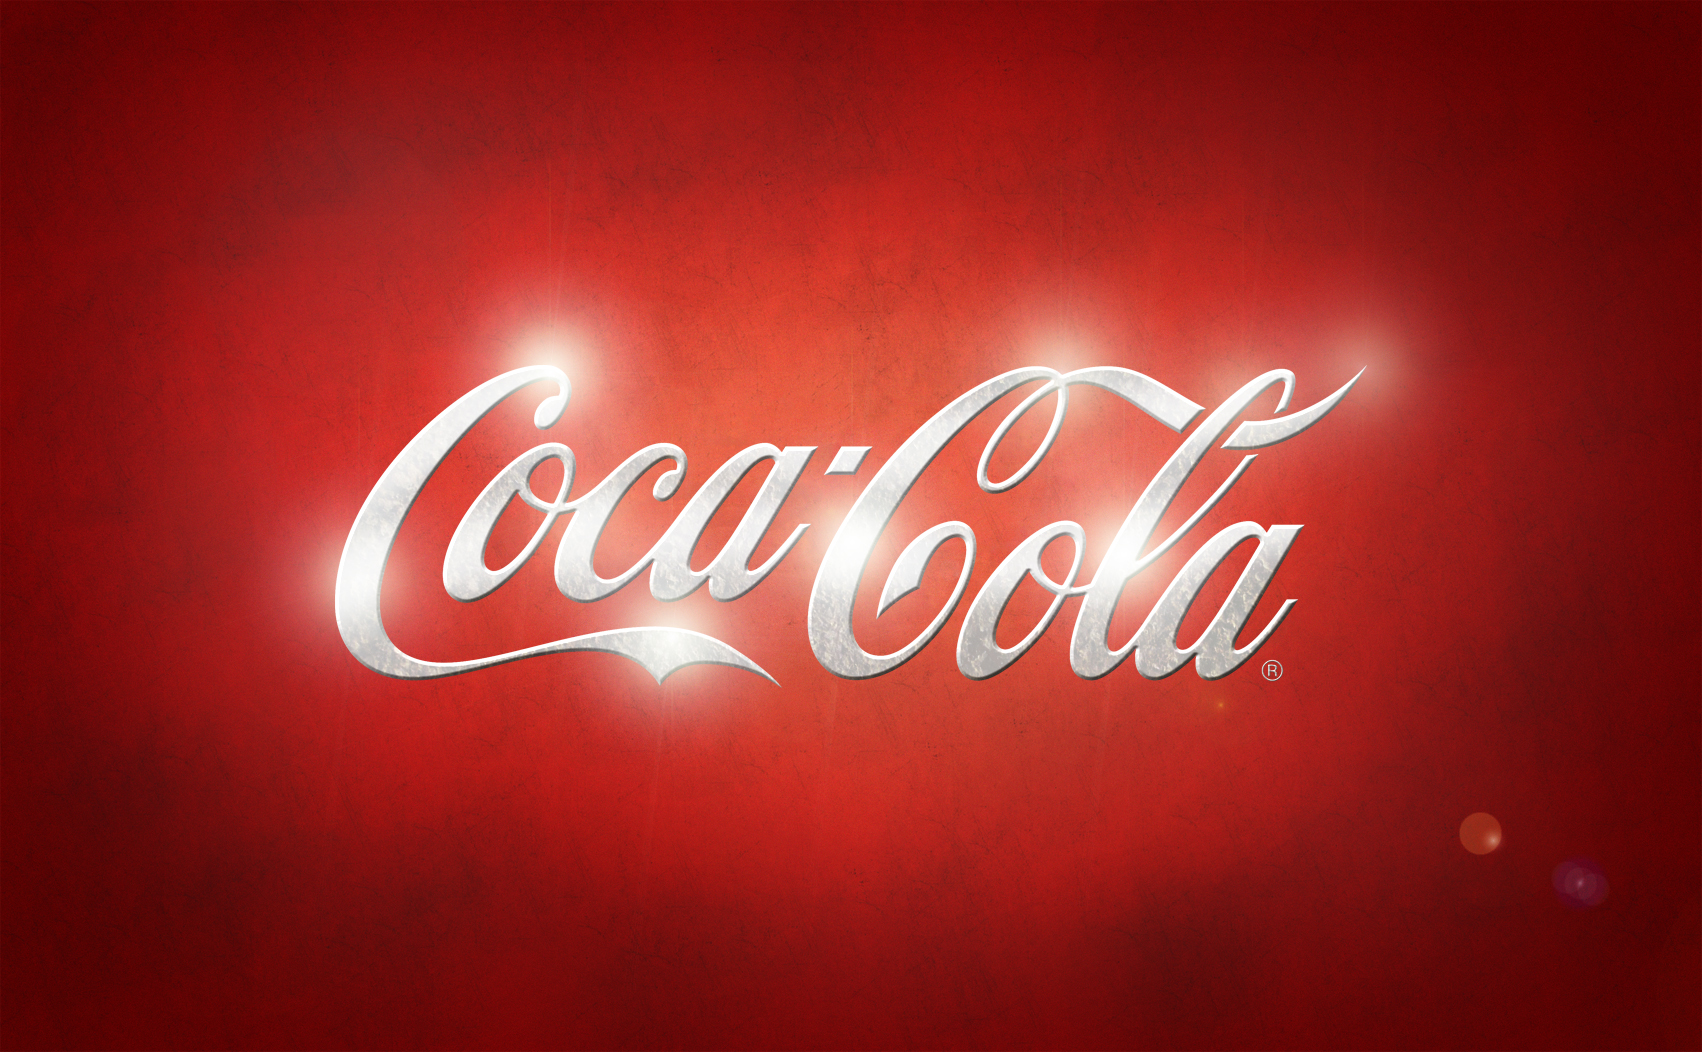 Coca Cola logo wallpaper Wallpaper